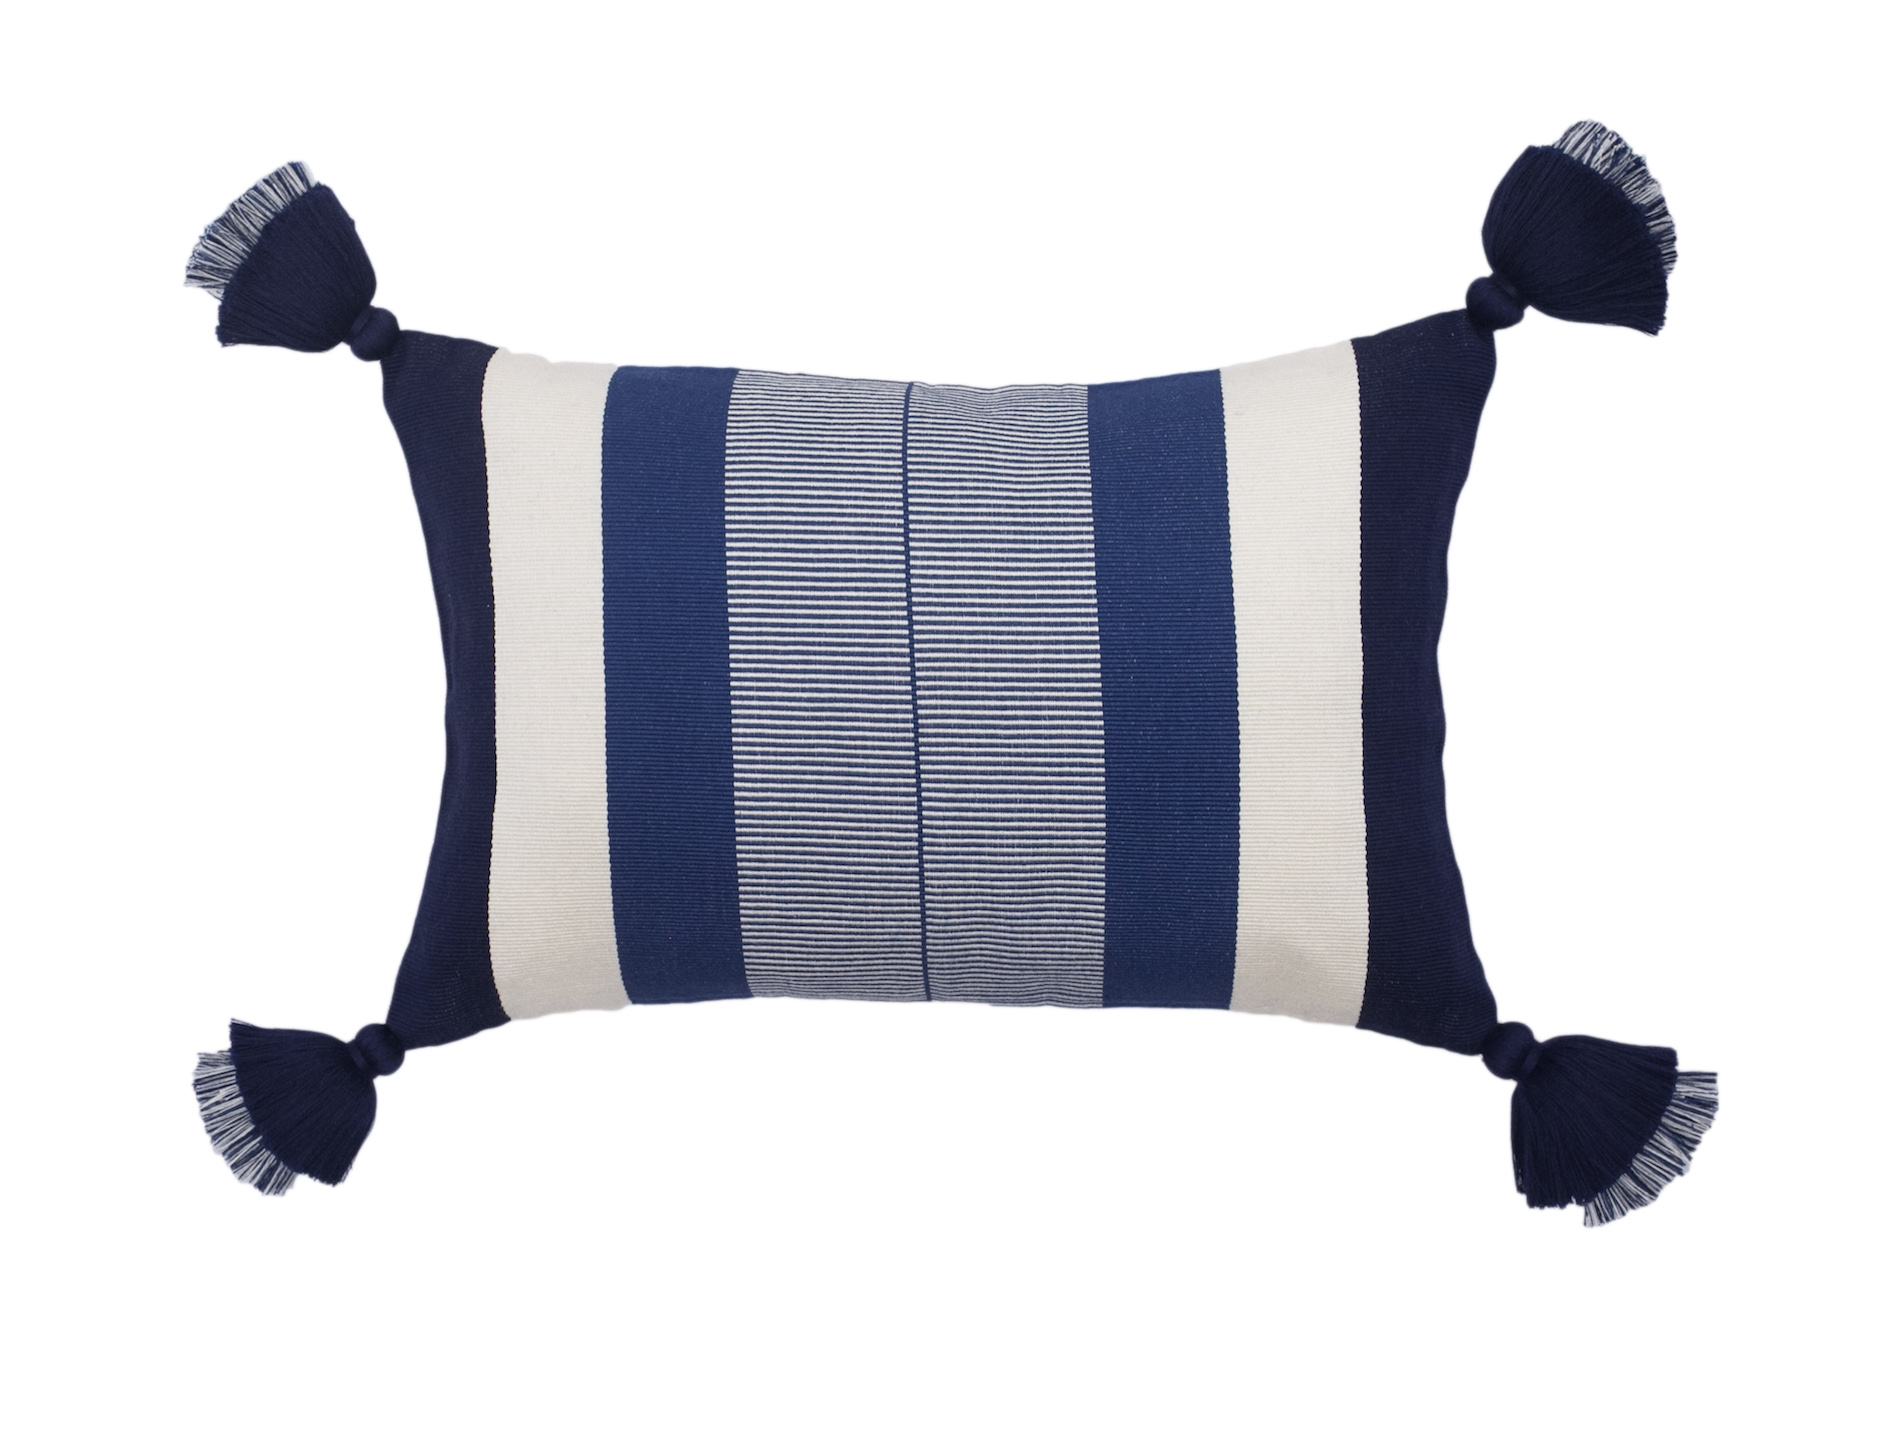 Apus pillow 30x50